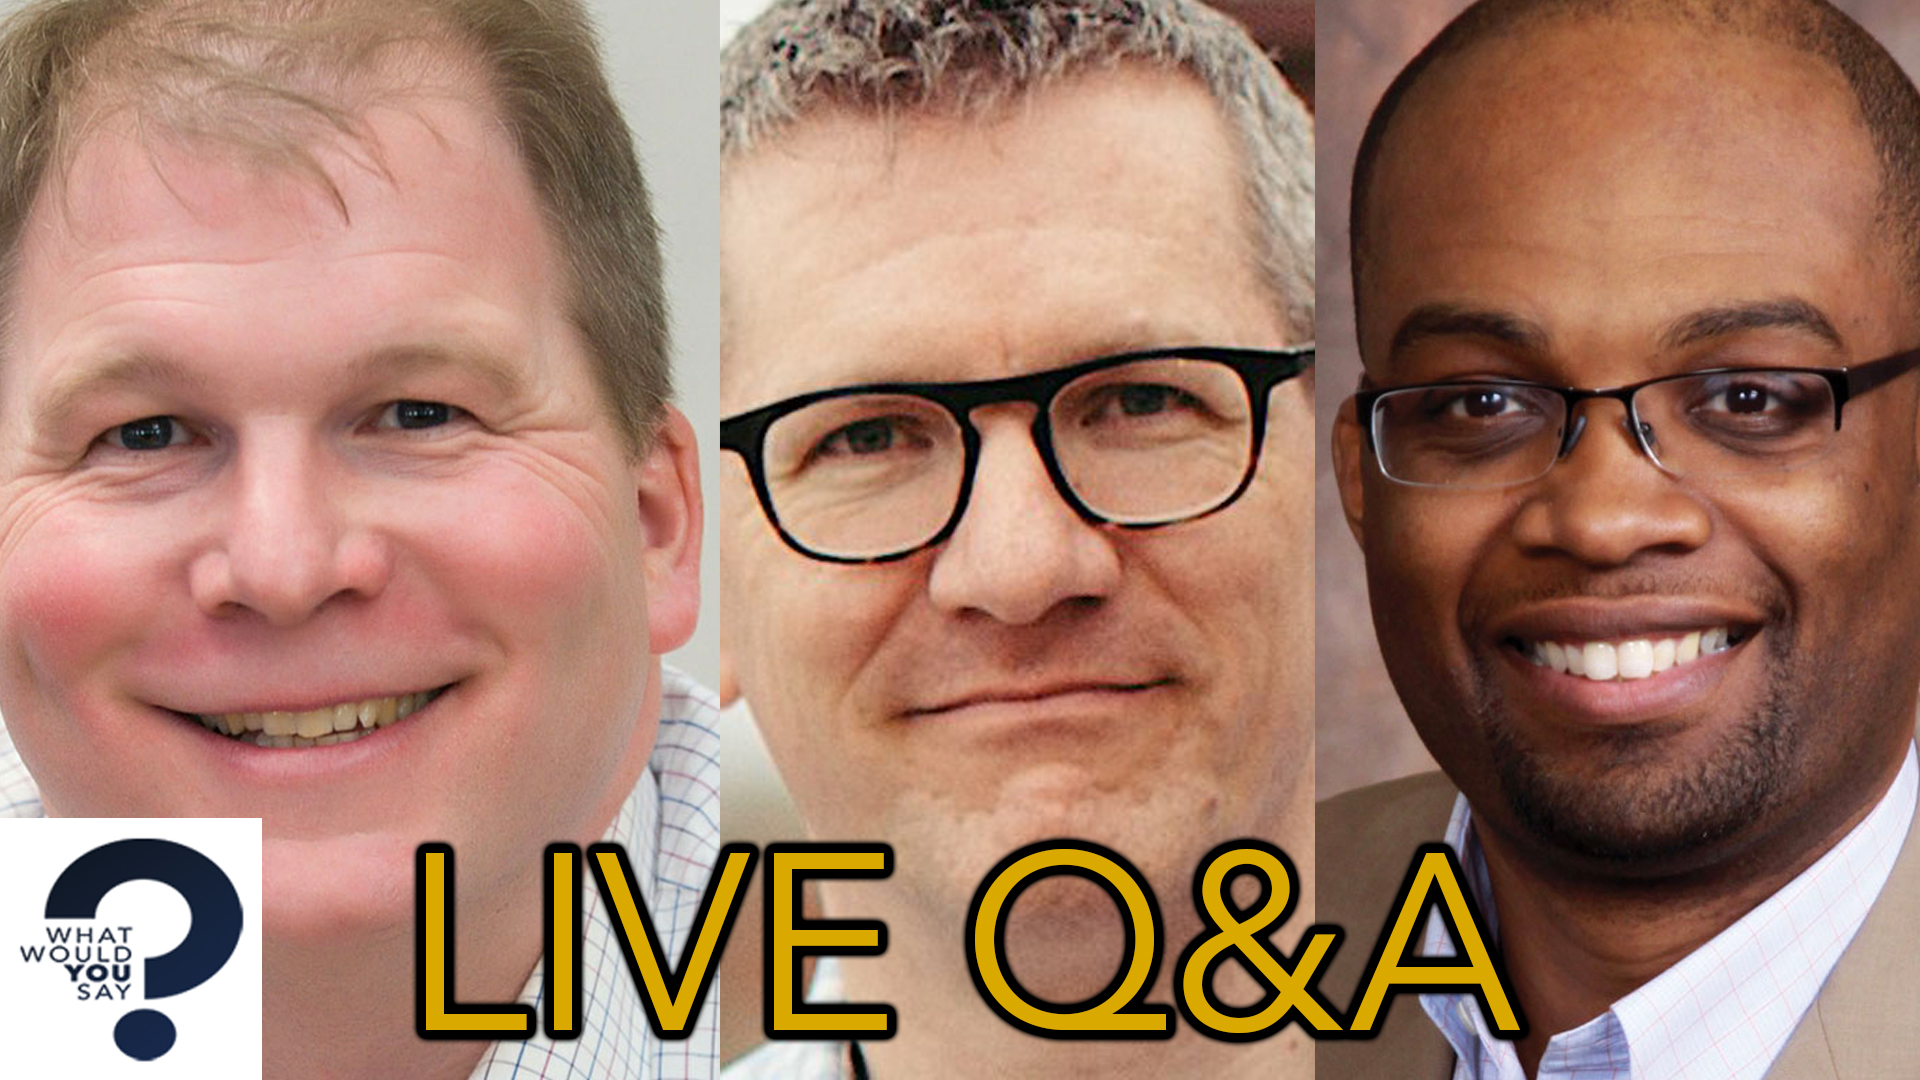 Responding to the Current Crisis With Truth and Love – Live Q&A Panel